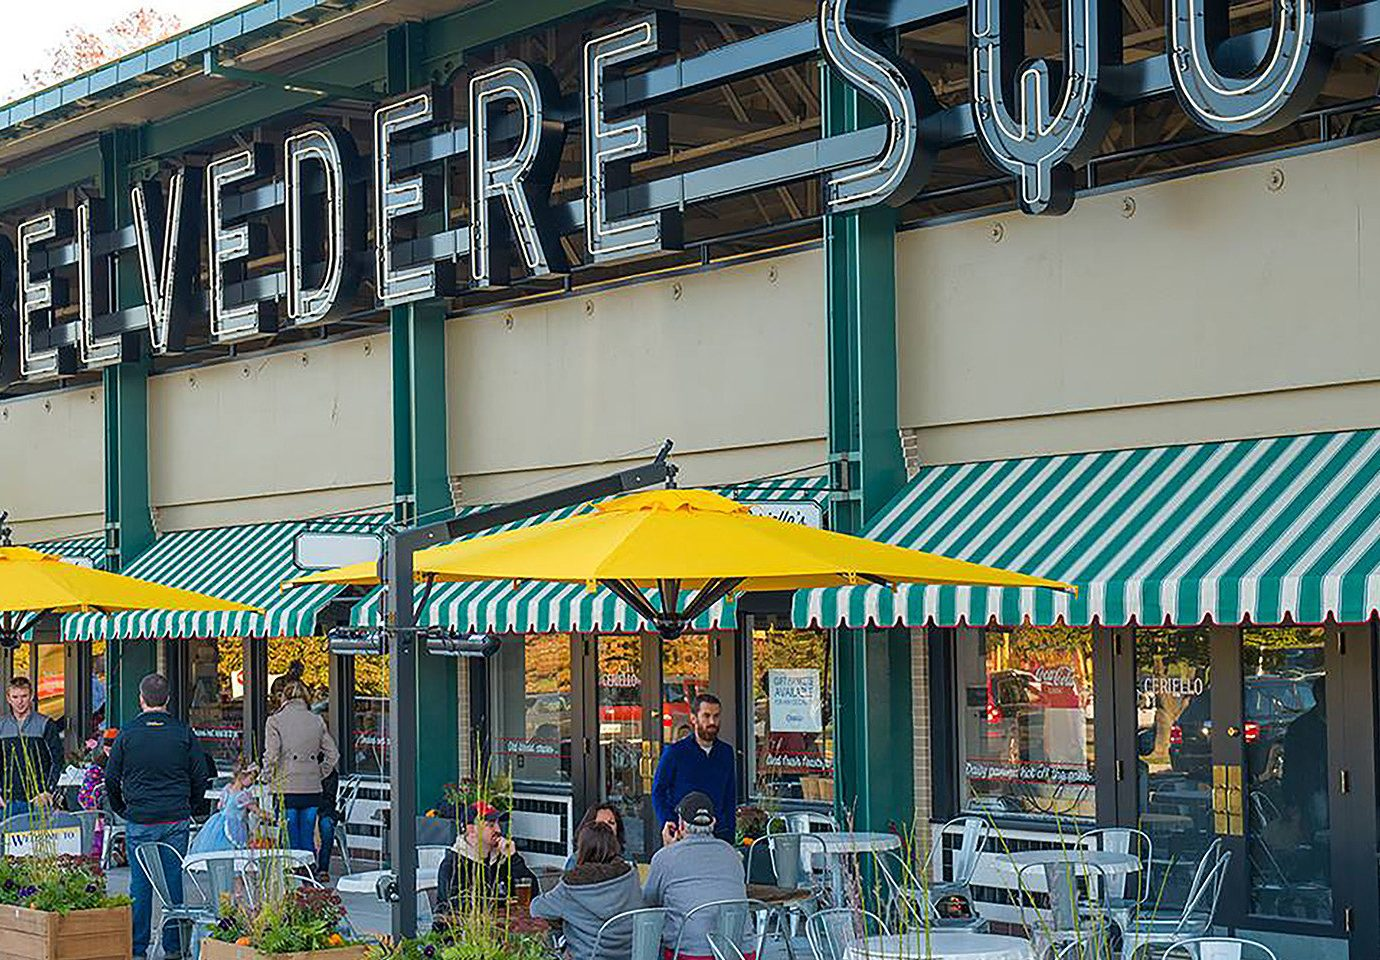 Food + Drink building outdoor marketplace public space market City neighbourhood shopping retail facade street restaurant grocery store store